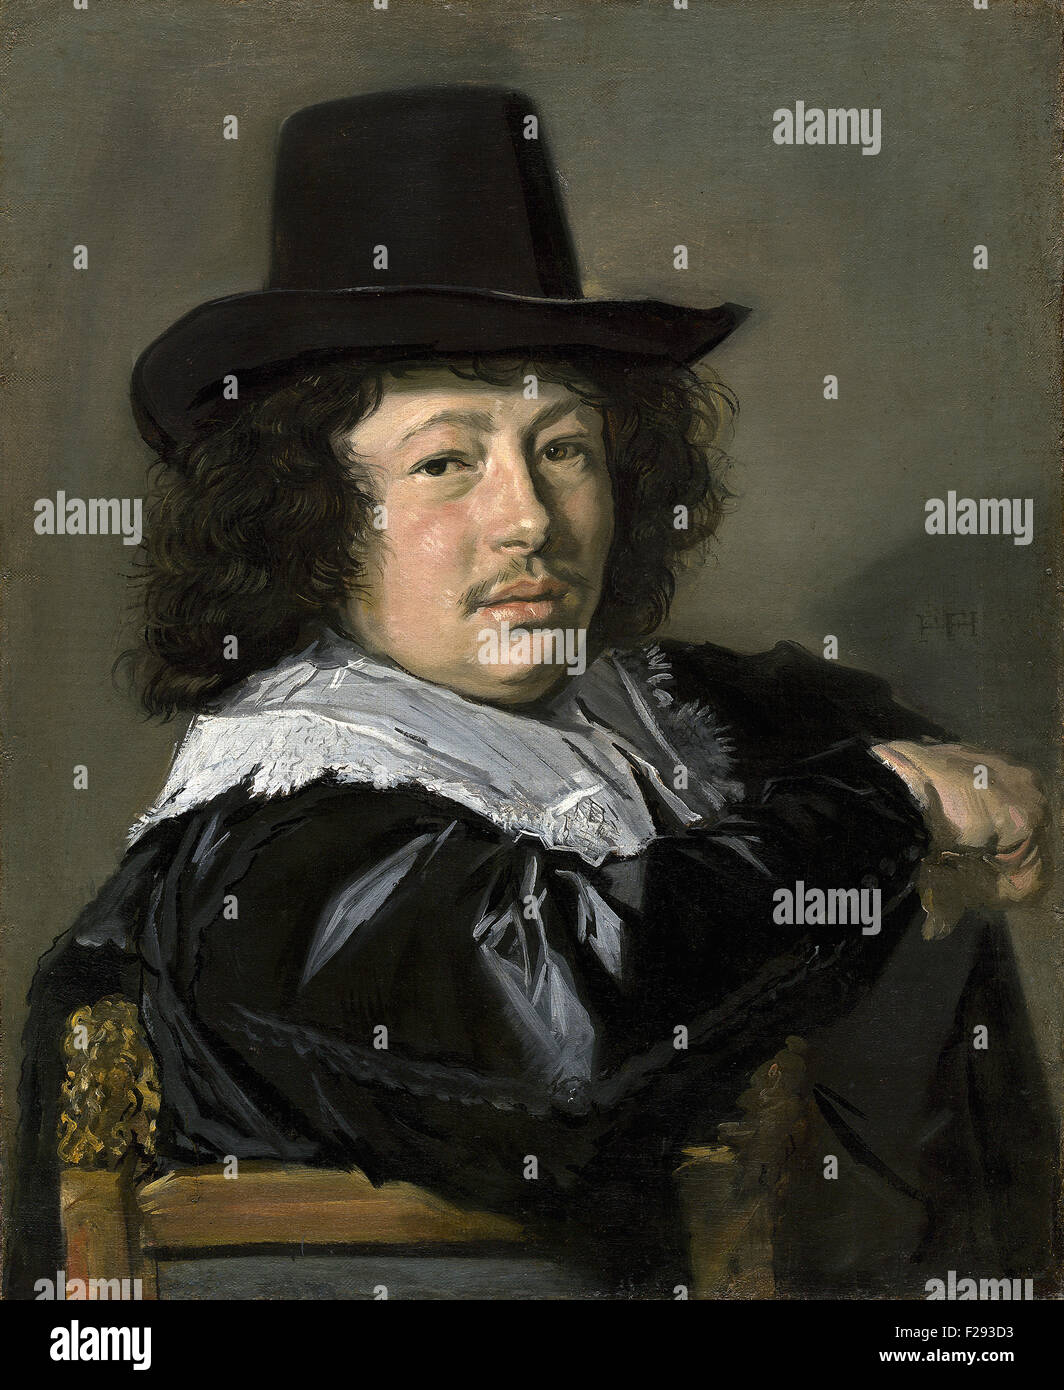 Frans Hals - Portrait of a Young Man 10 - Stock Image